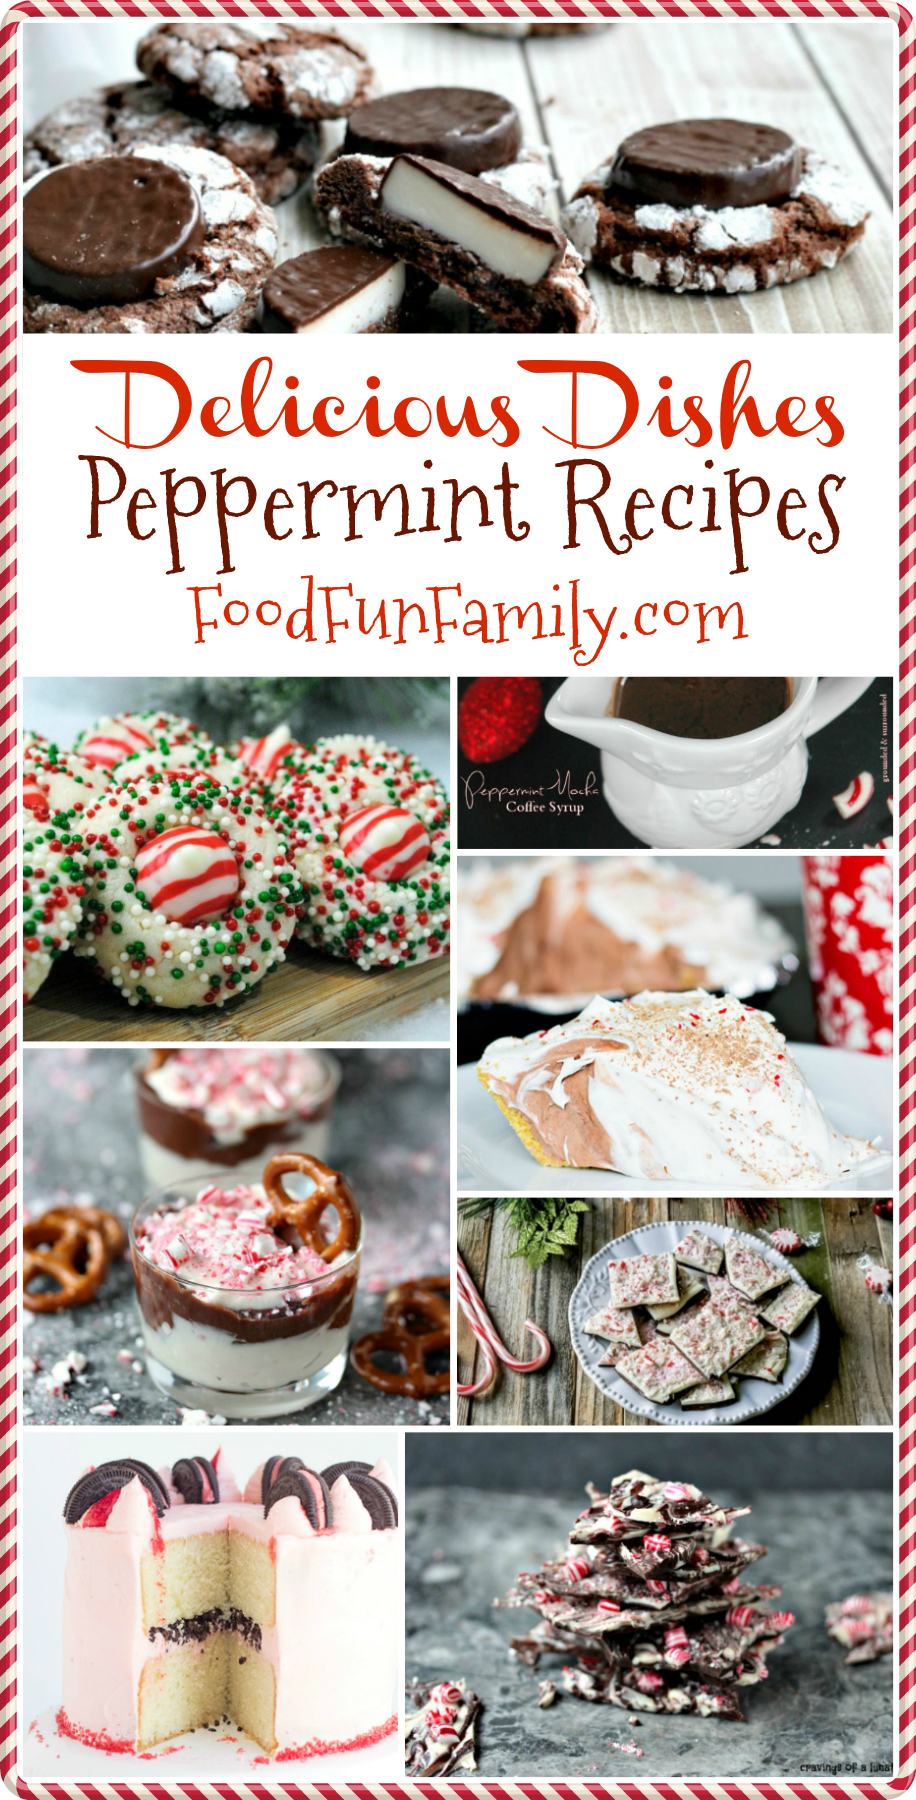 A collection of amazing Peppermint recipes, perfect for the holidays! Plus our weekly recipe linky, with all types of recipes to discover and share, from dinners to drinks to appetizers and desserts.